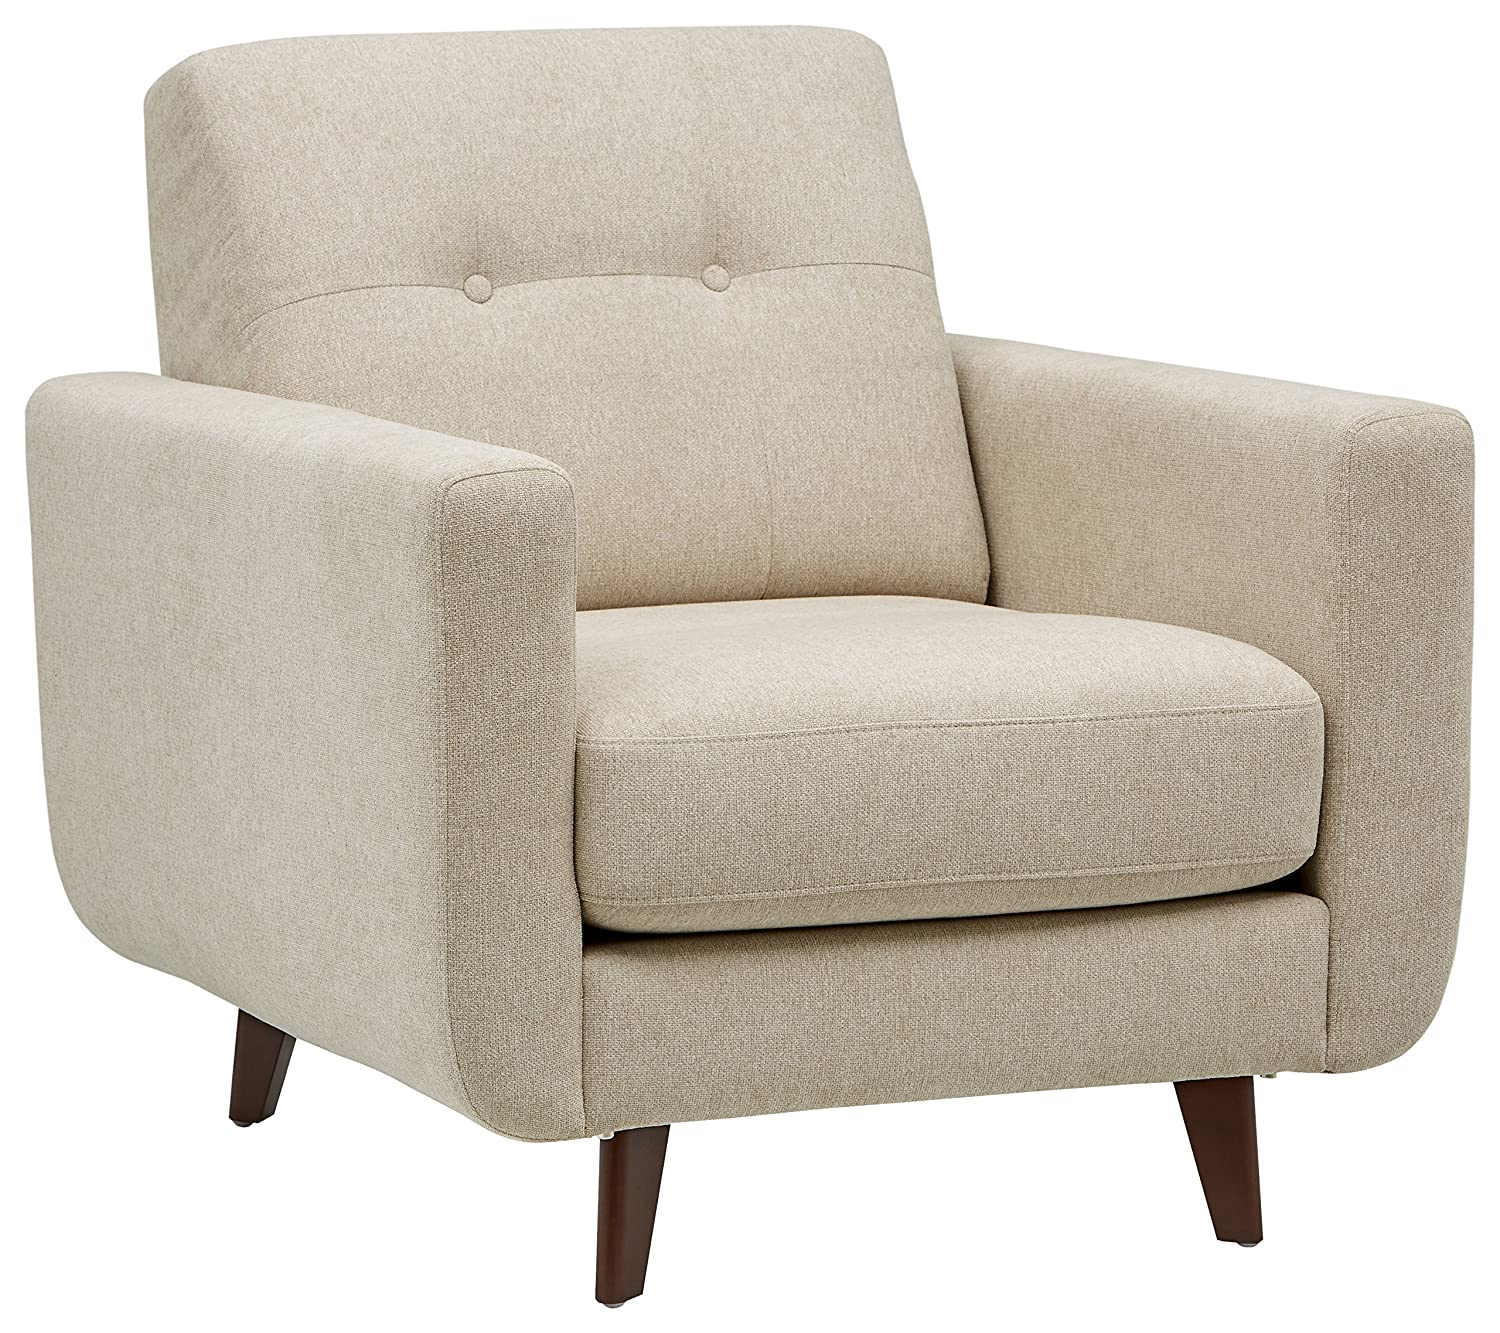 """Rivet Sloane Mid-Century Modern Armchair with Tapered Legs, 32.7""""W, Shell"""